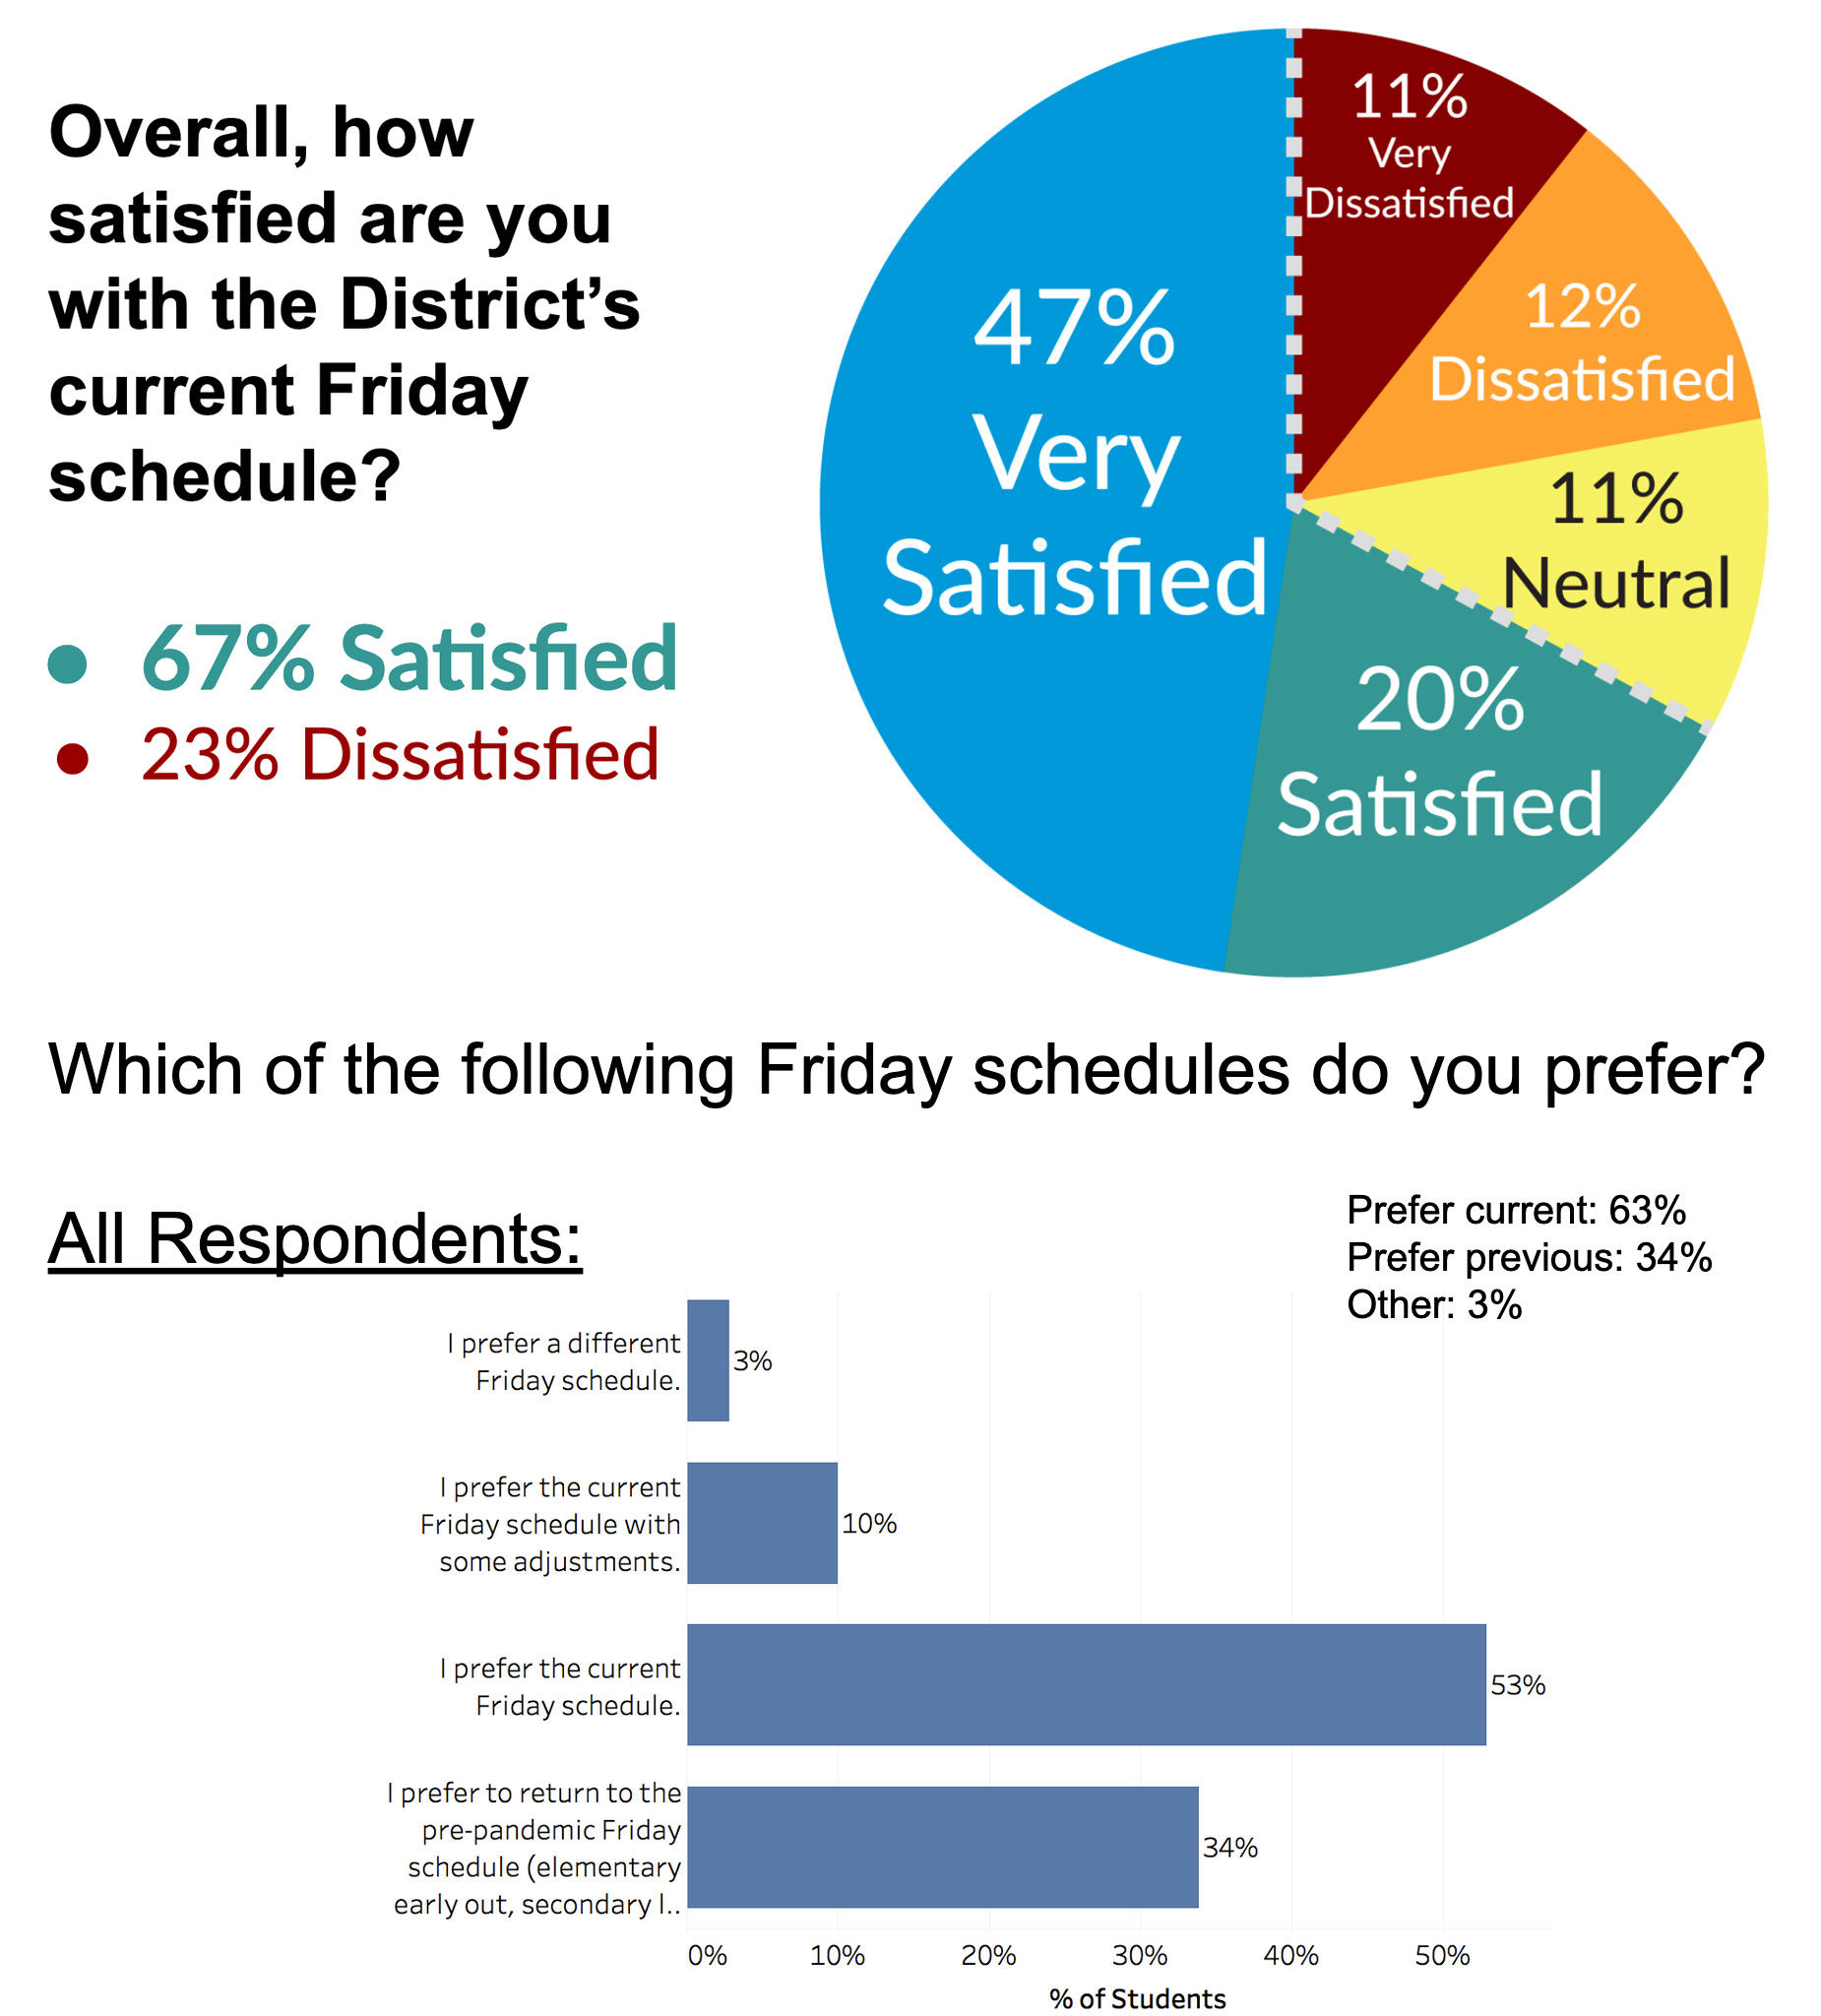 67% Satisfied, 53% Prefer Current Schedule